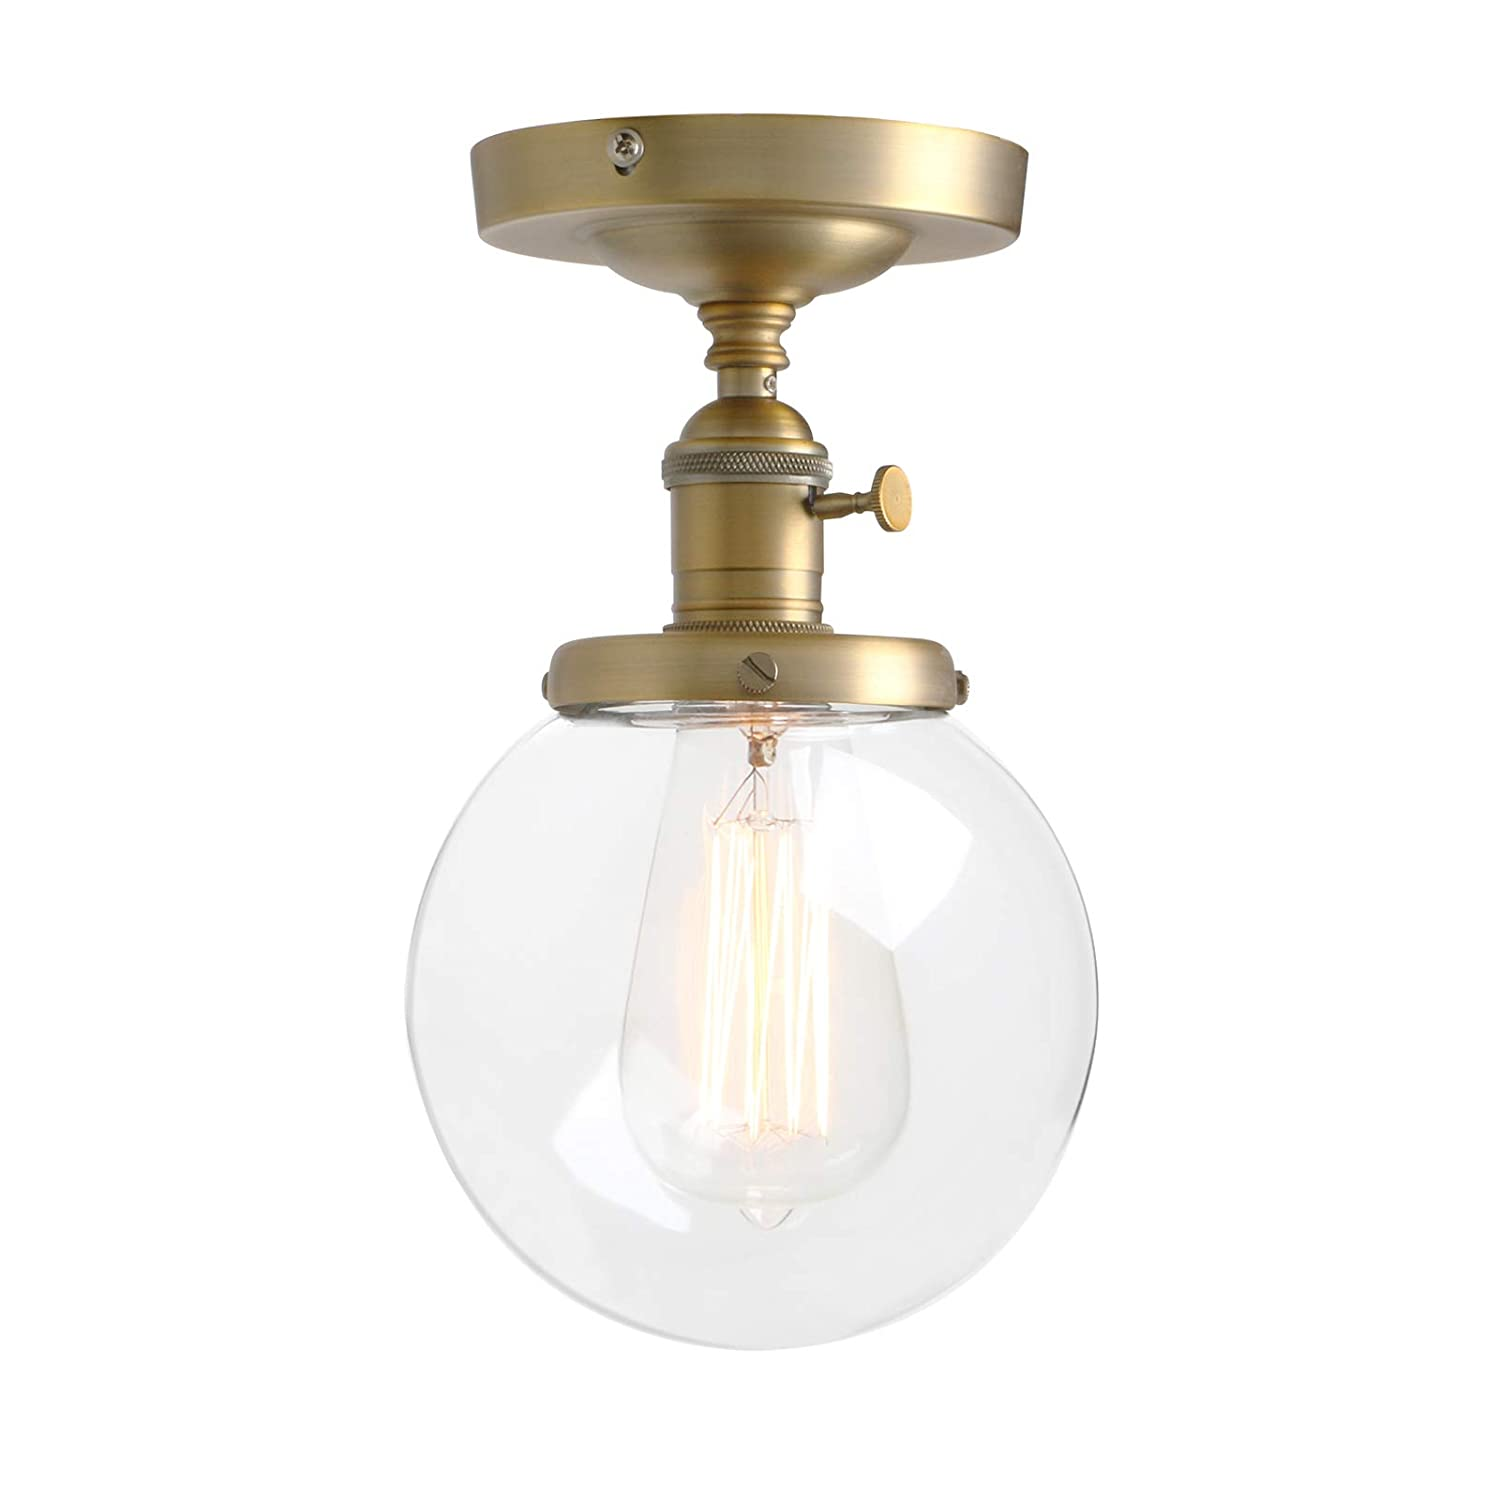 Pathson industrial brass semi flush mount ceiling light vintage style pendant lighting glass shade hanging light fixtures for laundry room living room